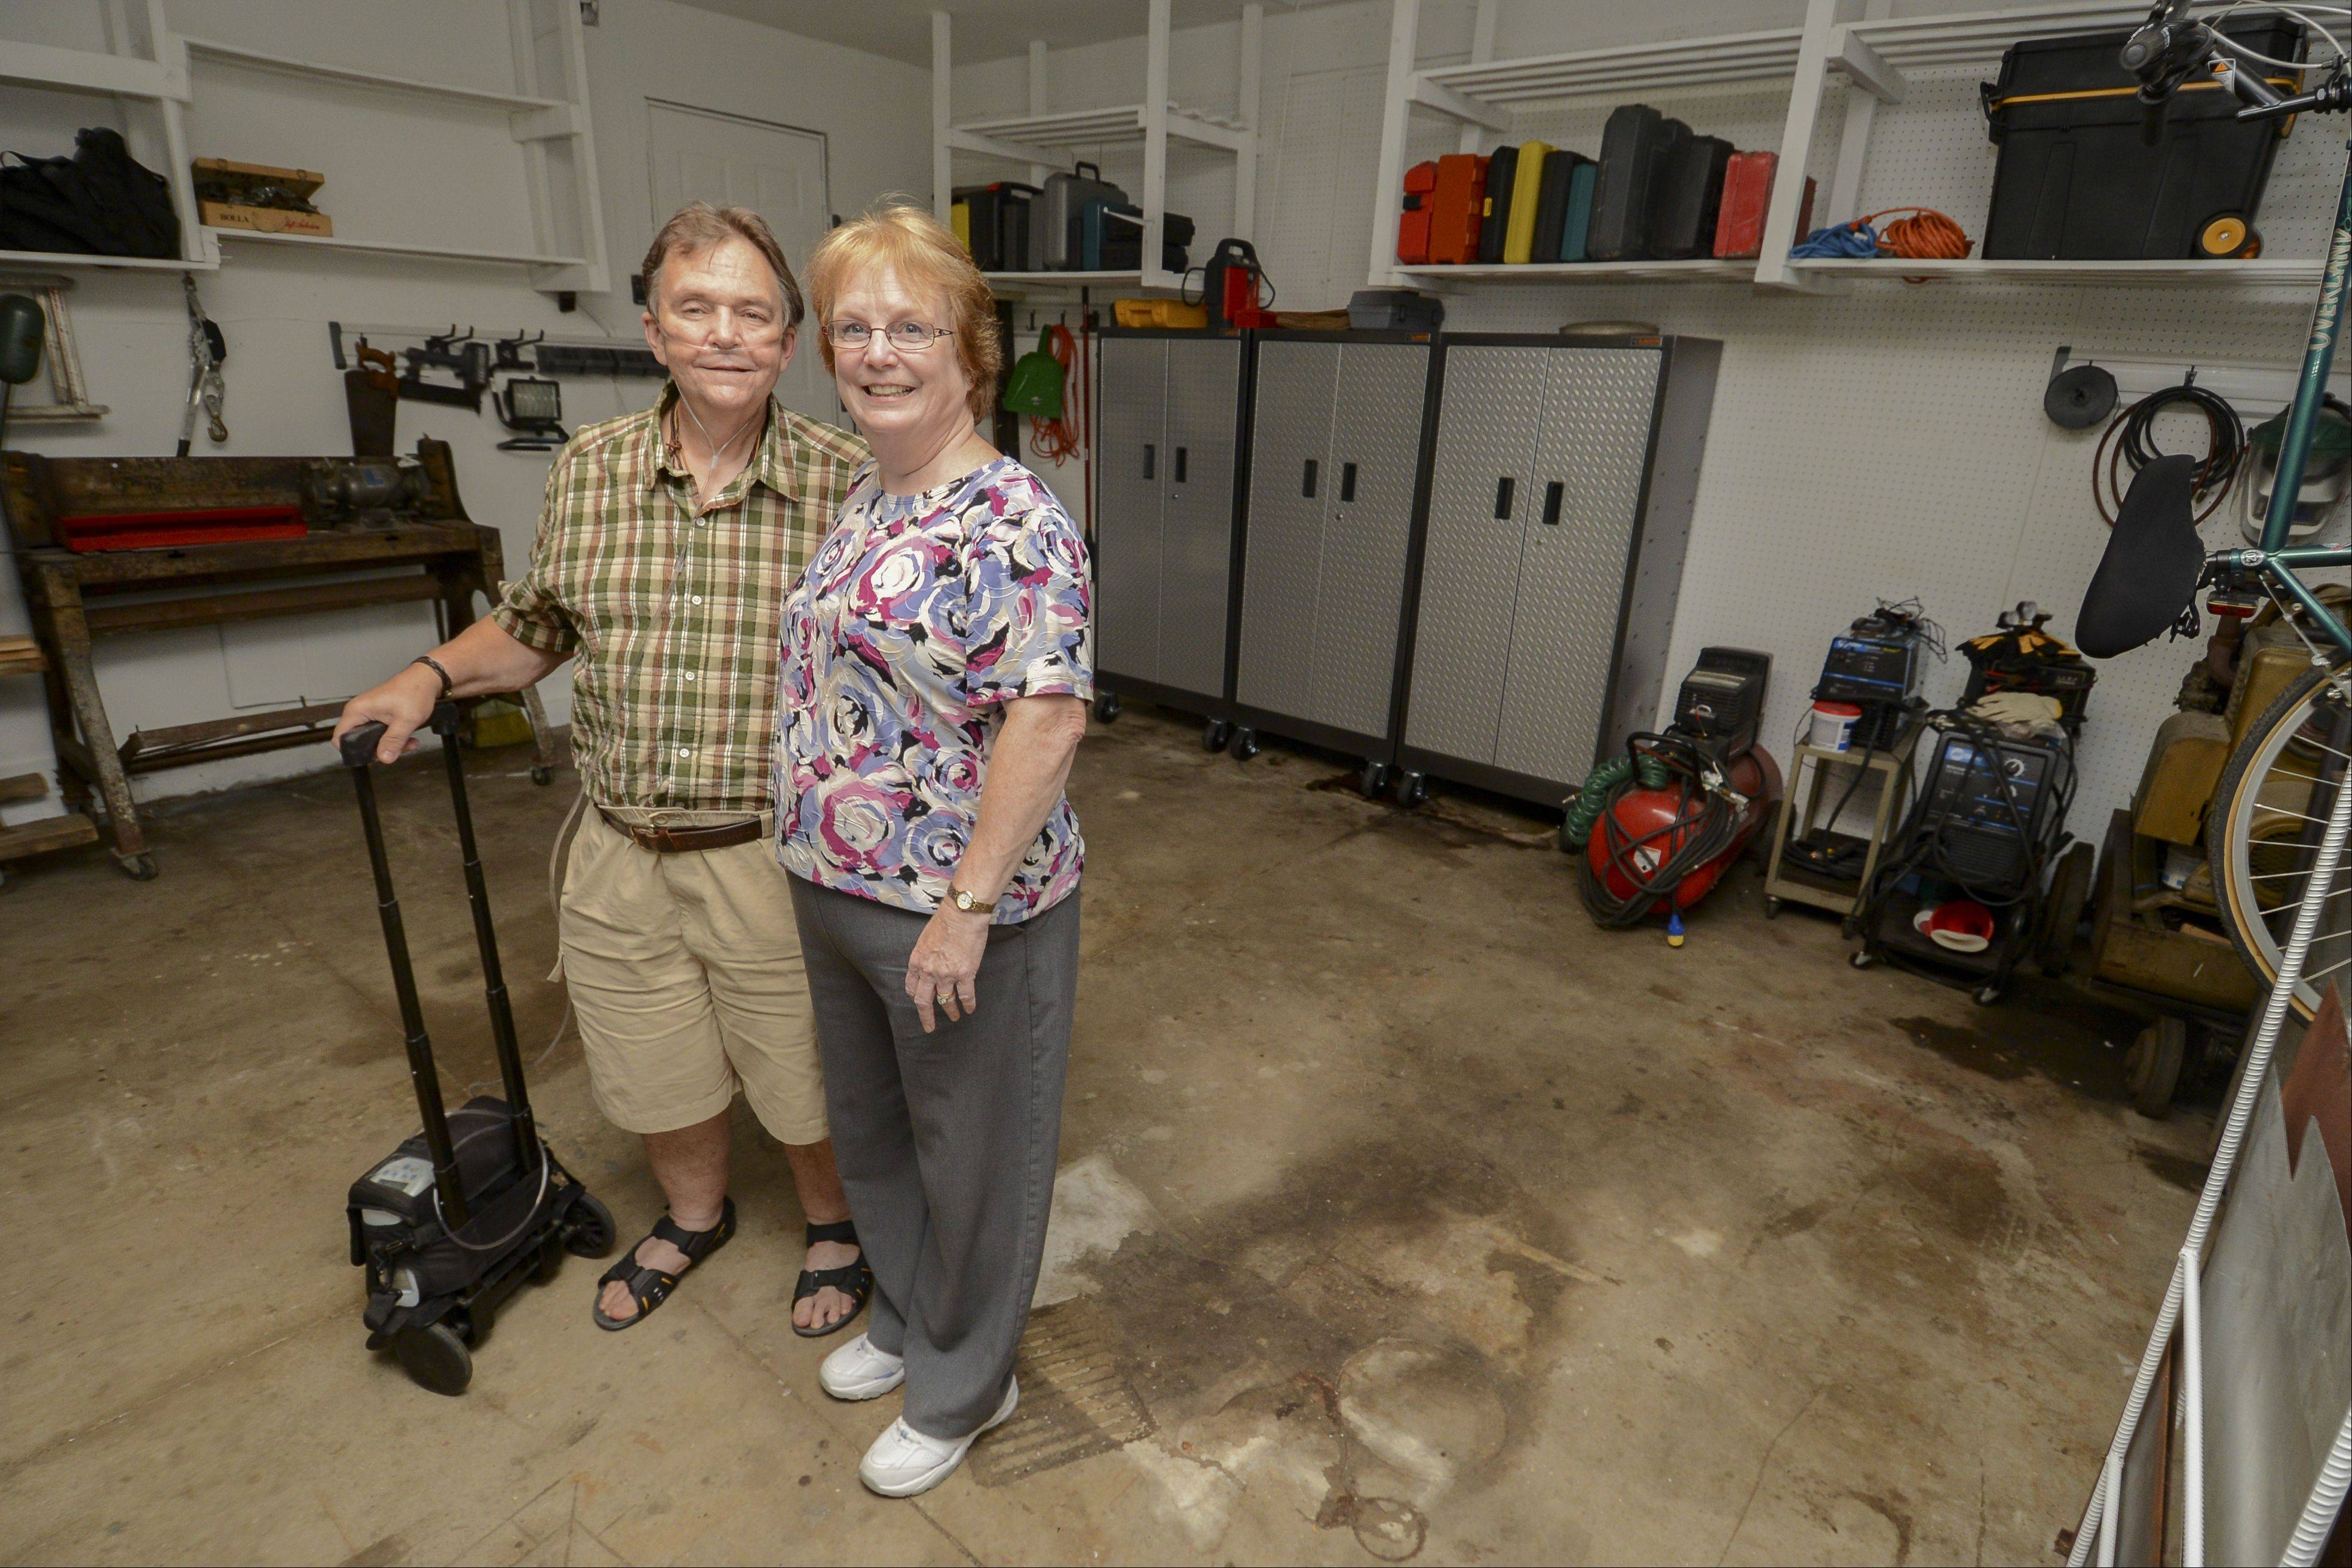 Having started dating when they were 15, Bob and Dianne DeBellis of Roselle have a lifetime of memorabilia and memories.